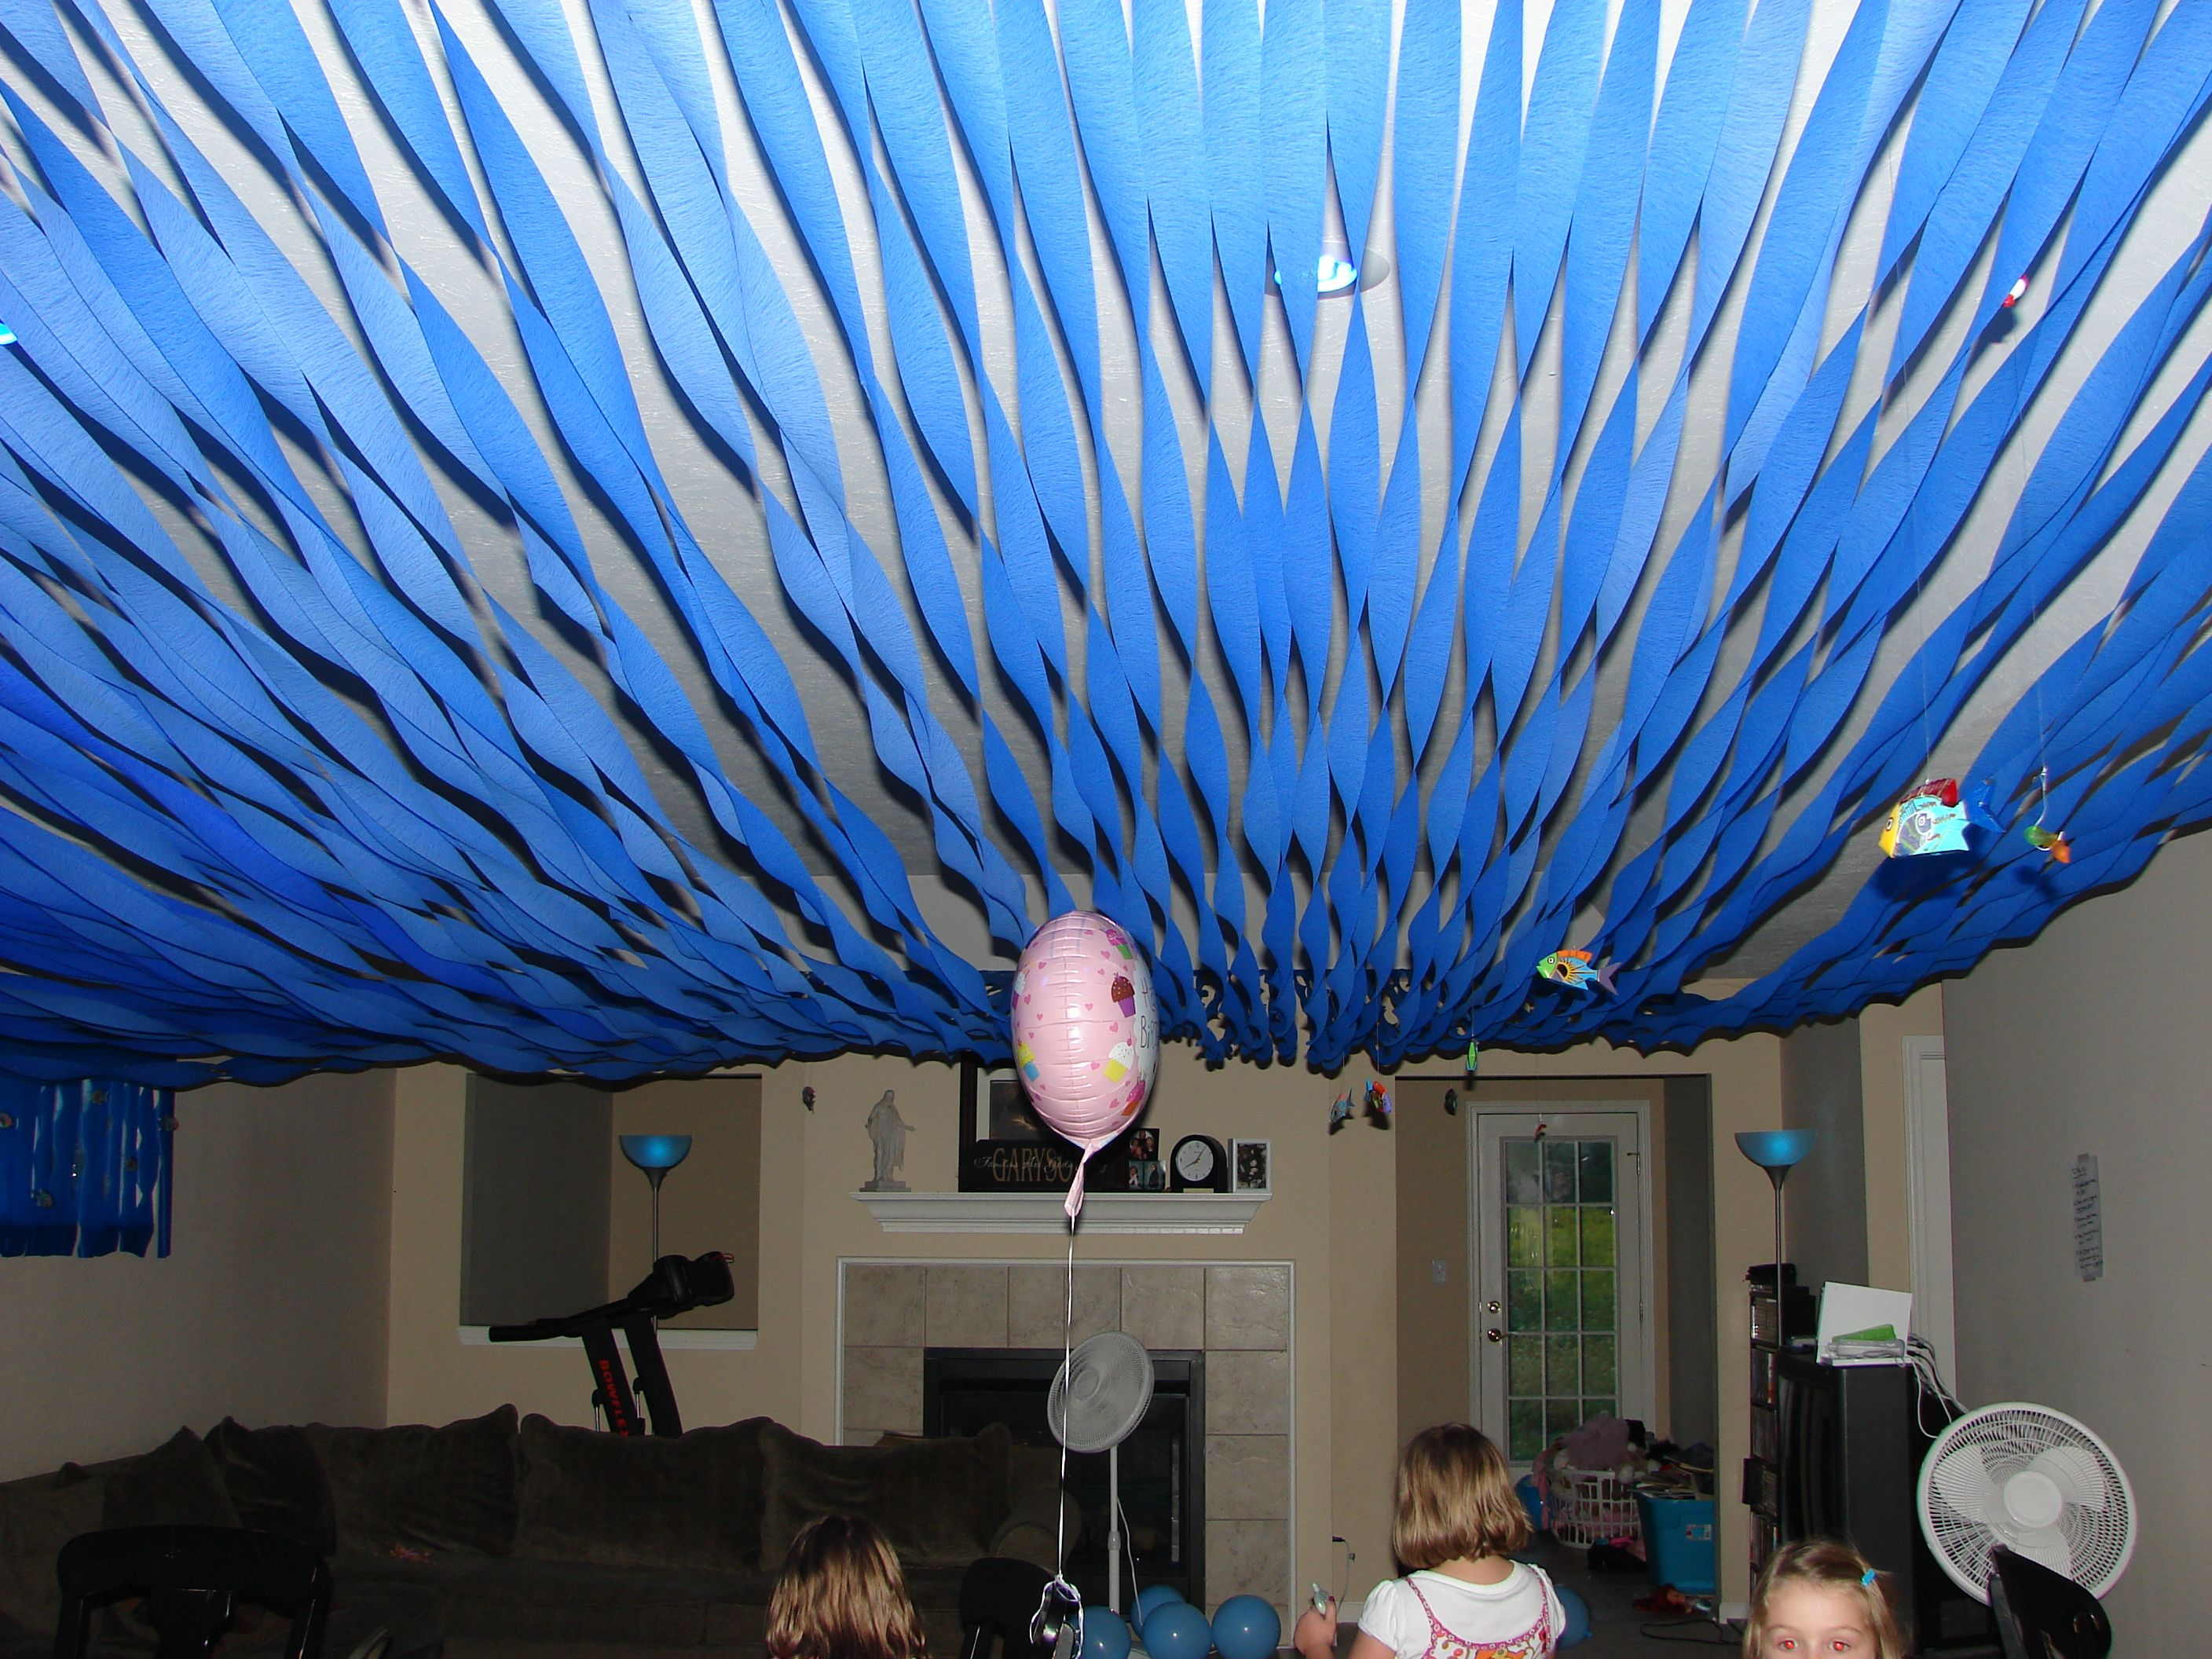 under the sea decorations church vbs ideas pinterest